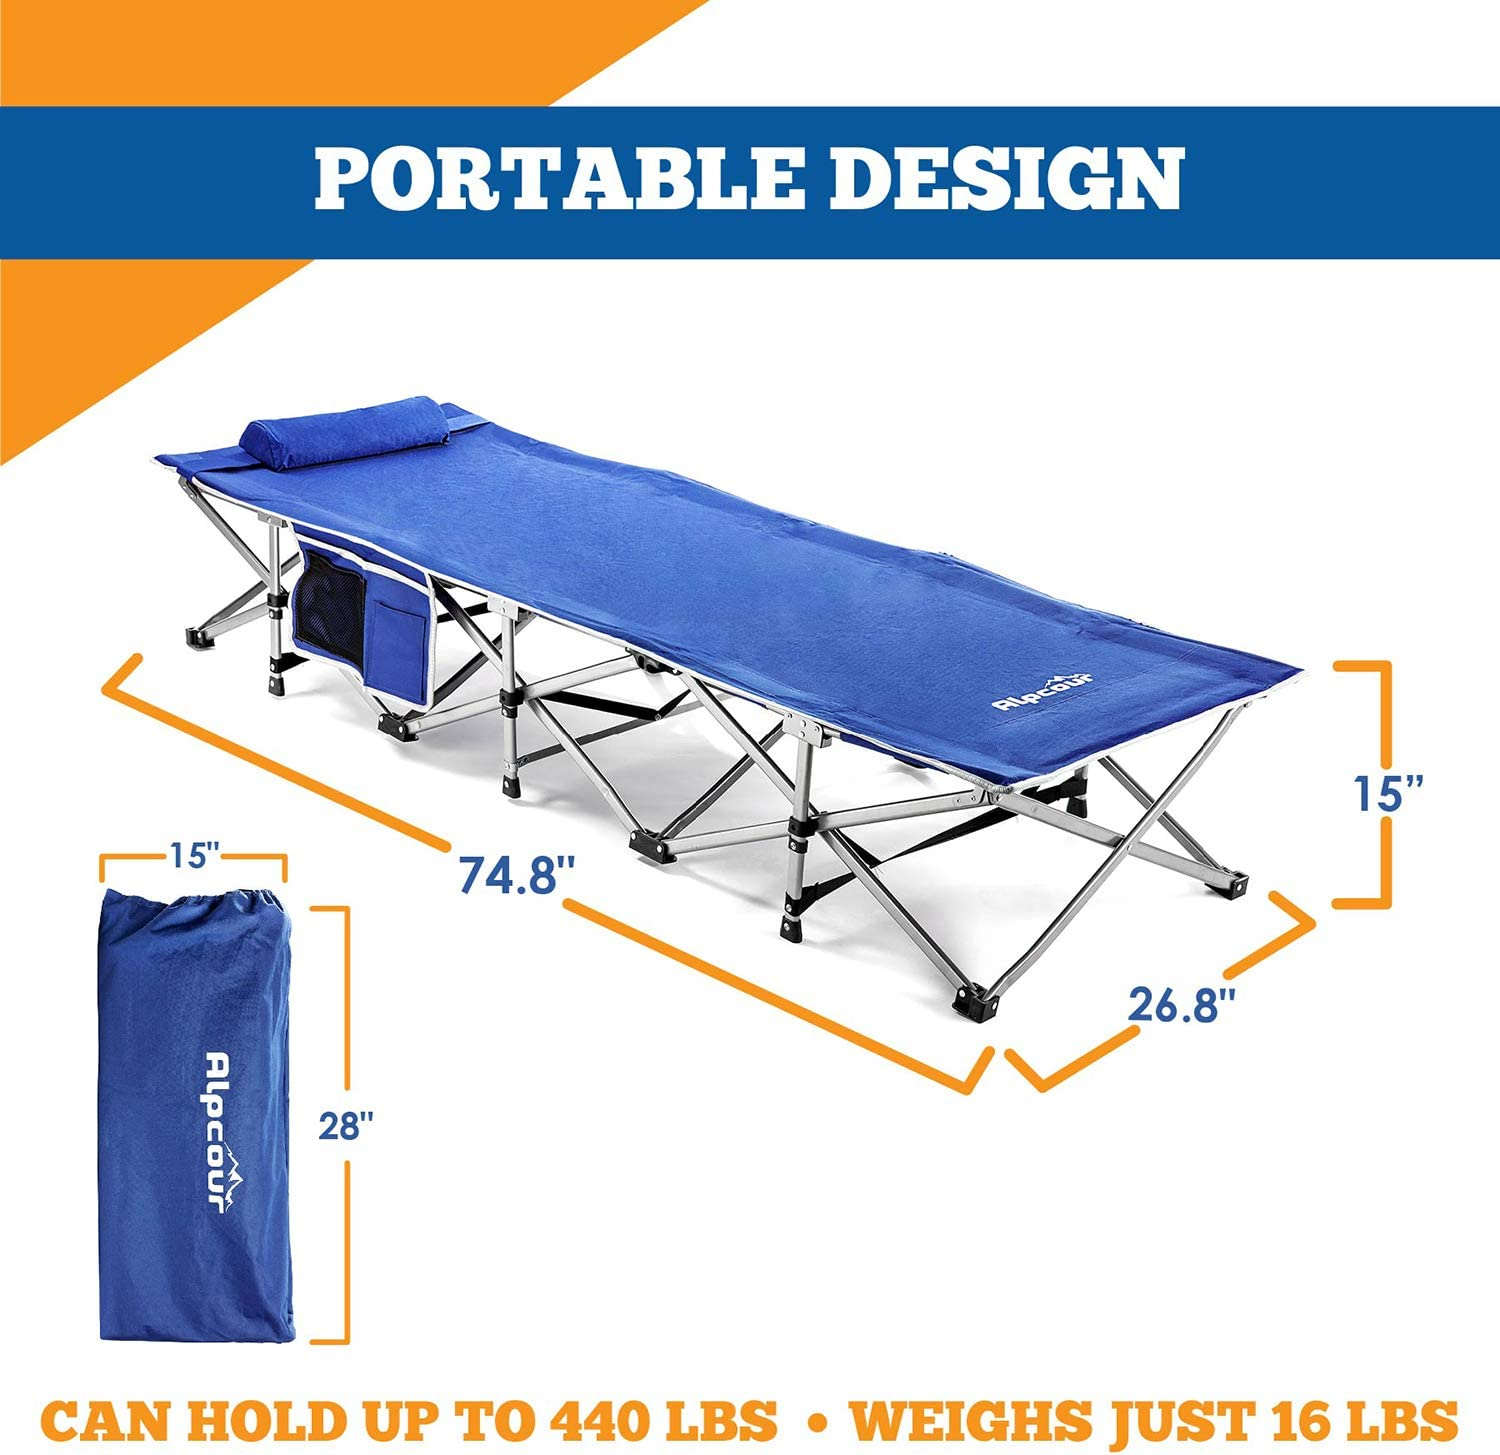 Extra Strong Single Person Small-Collapsing Bed in a Bag w//Pillow for Indoor /& Outdoor Use Alpcour Folding Camping Cot Deluxe Comfortable Extra Heavy Duty Design Holds Adults /& Kids Up to 440 Lbs